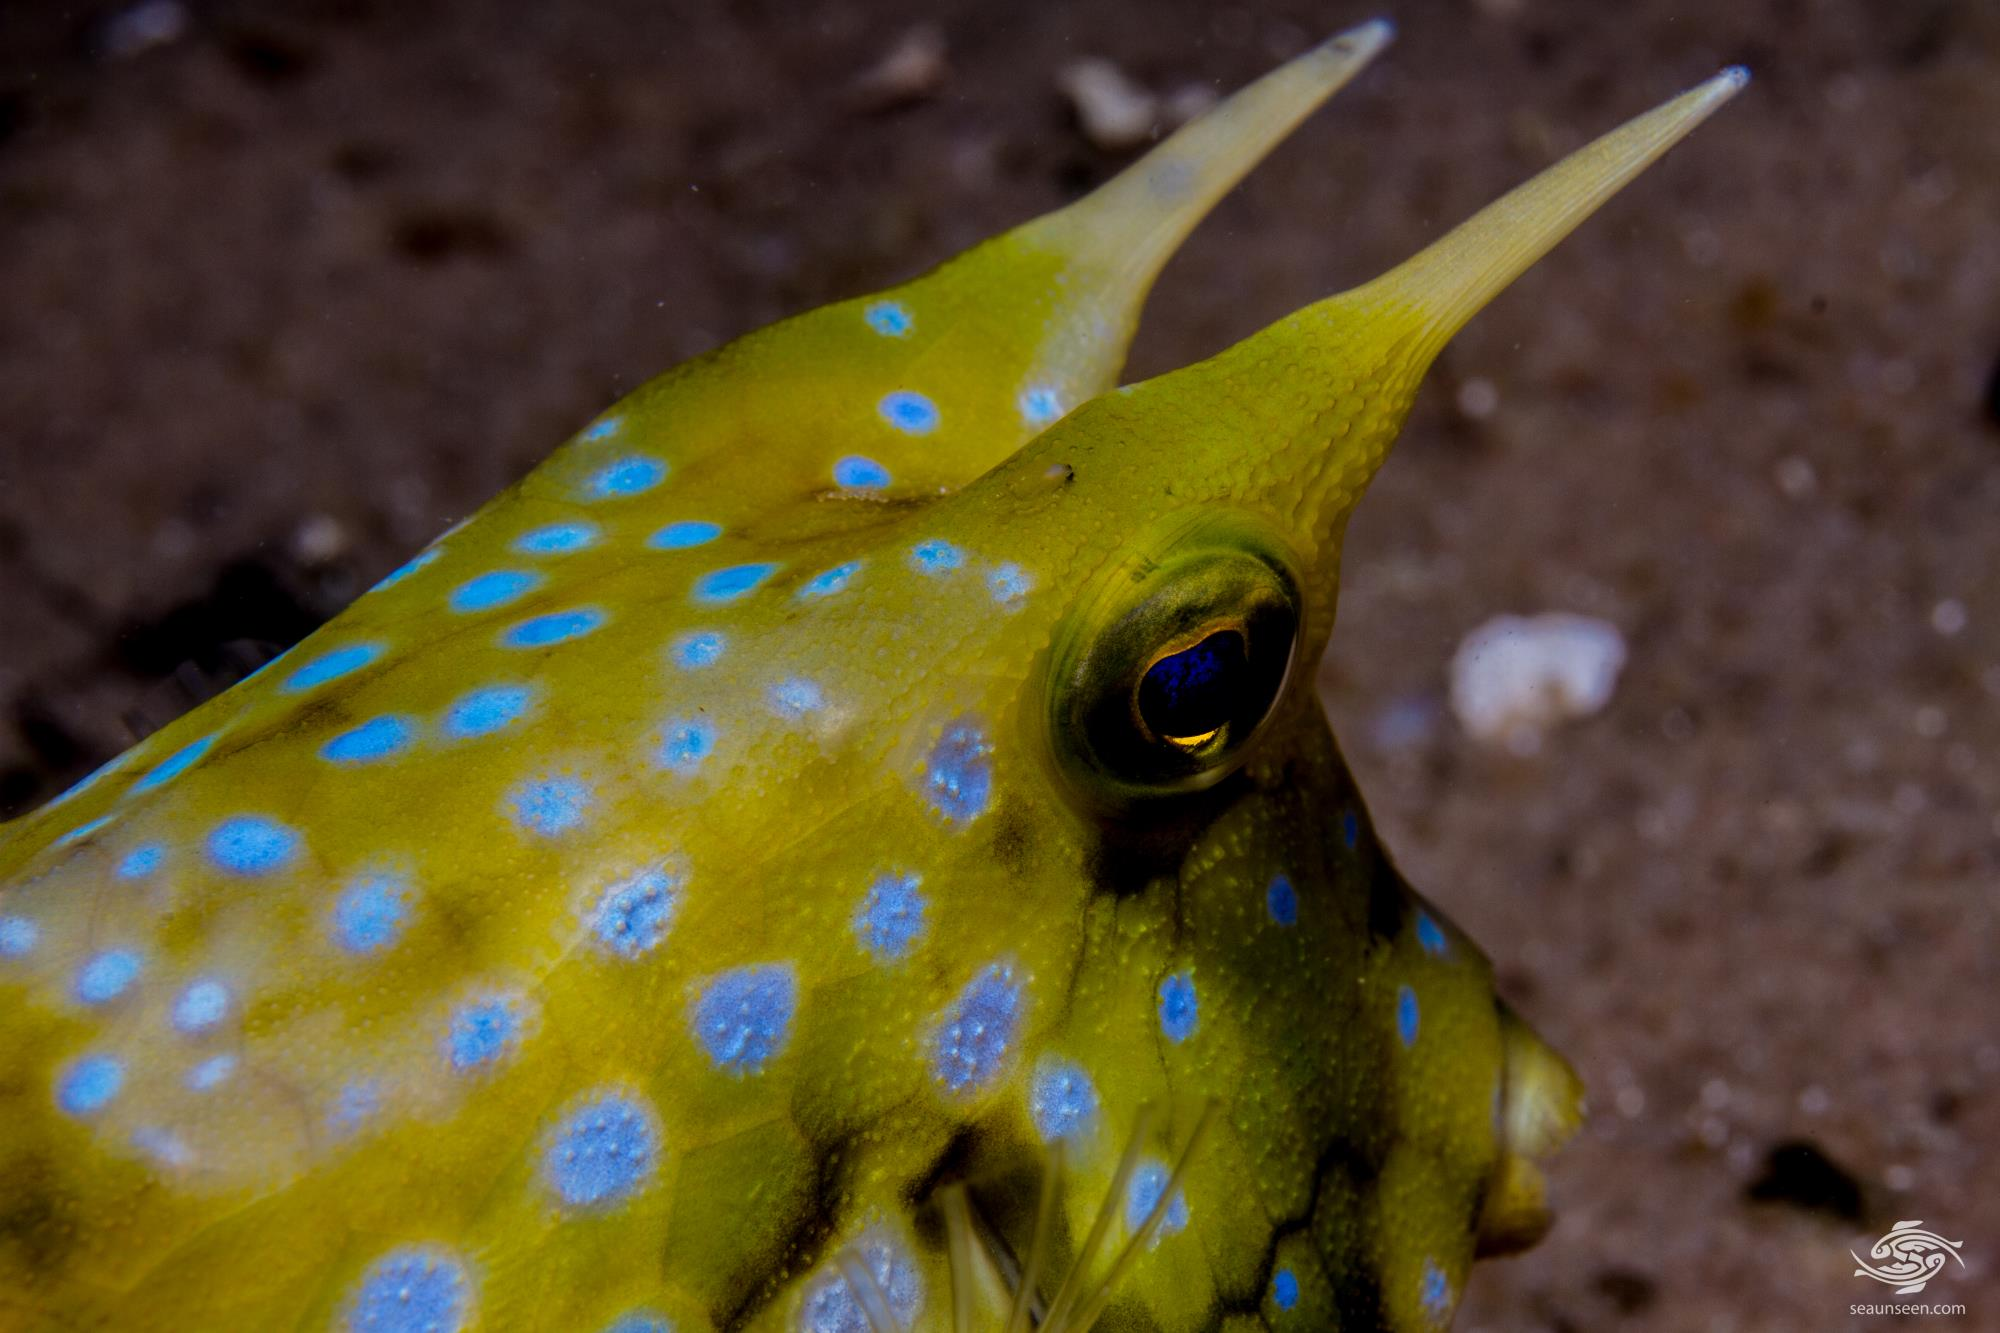 longhorn cowfish, Lactoria cornuta, also called the horned boxfish